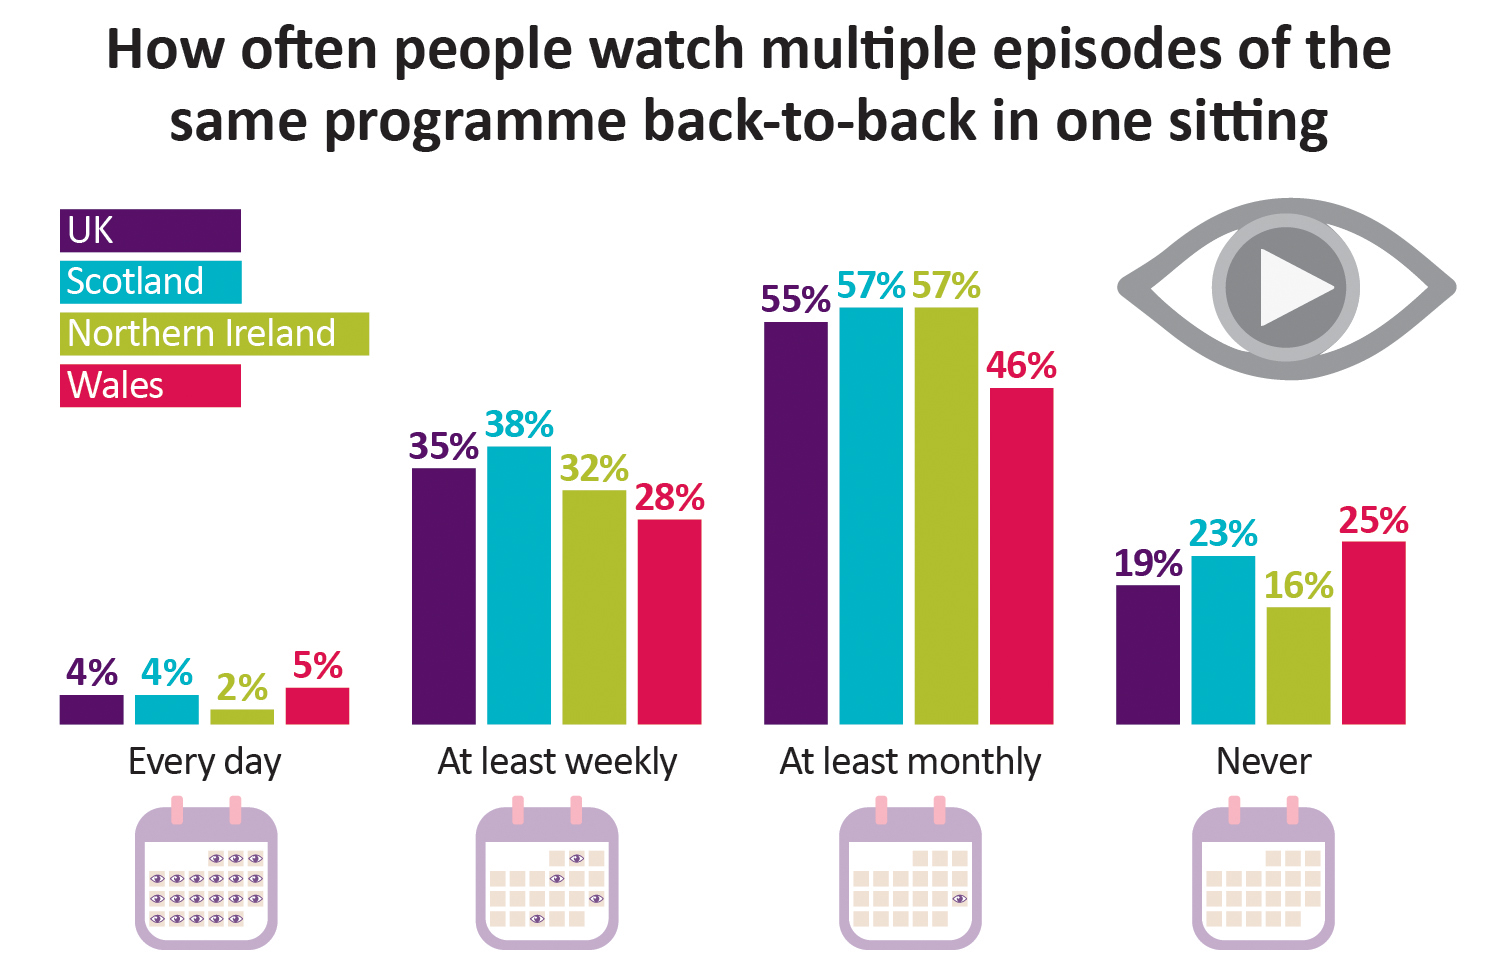 4% of Scottish people watch multiple episodes of the same programme back-to-back in one sitting every day; 32% at least weekly; 57% at least monthly; 16% never